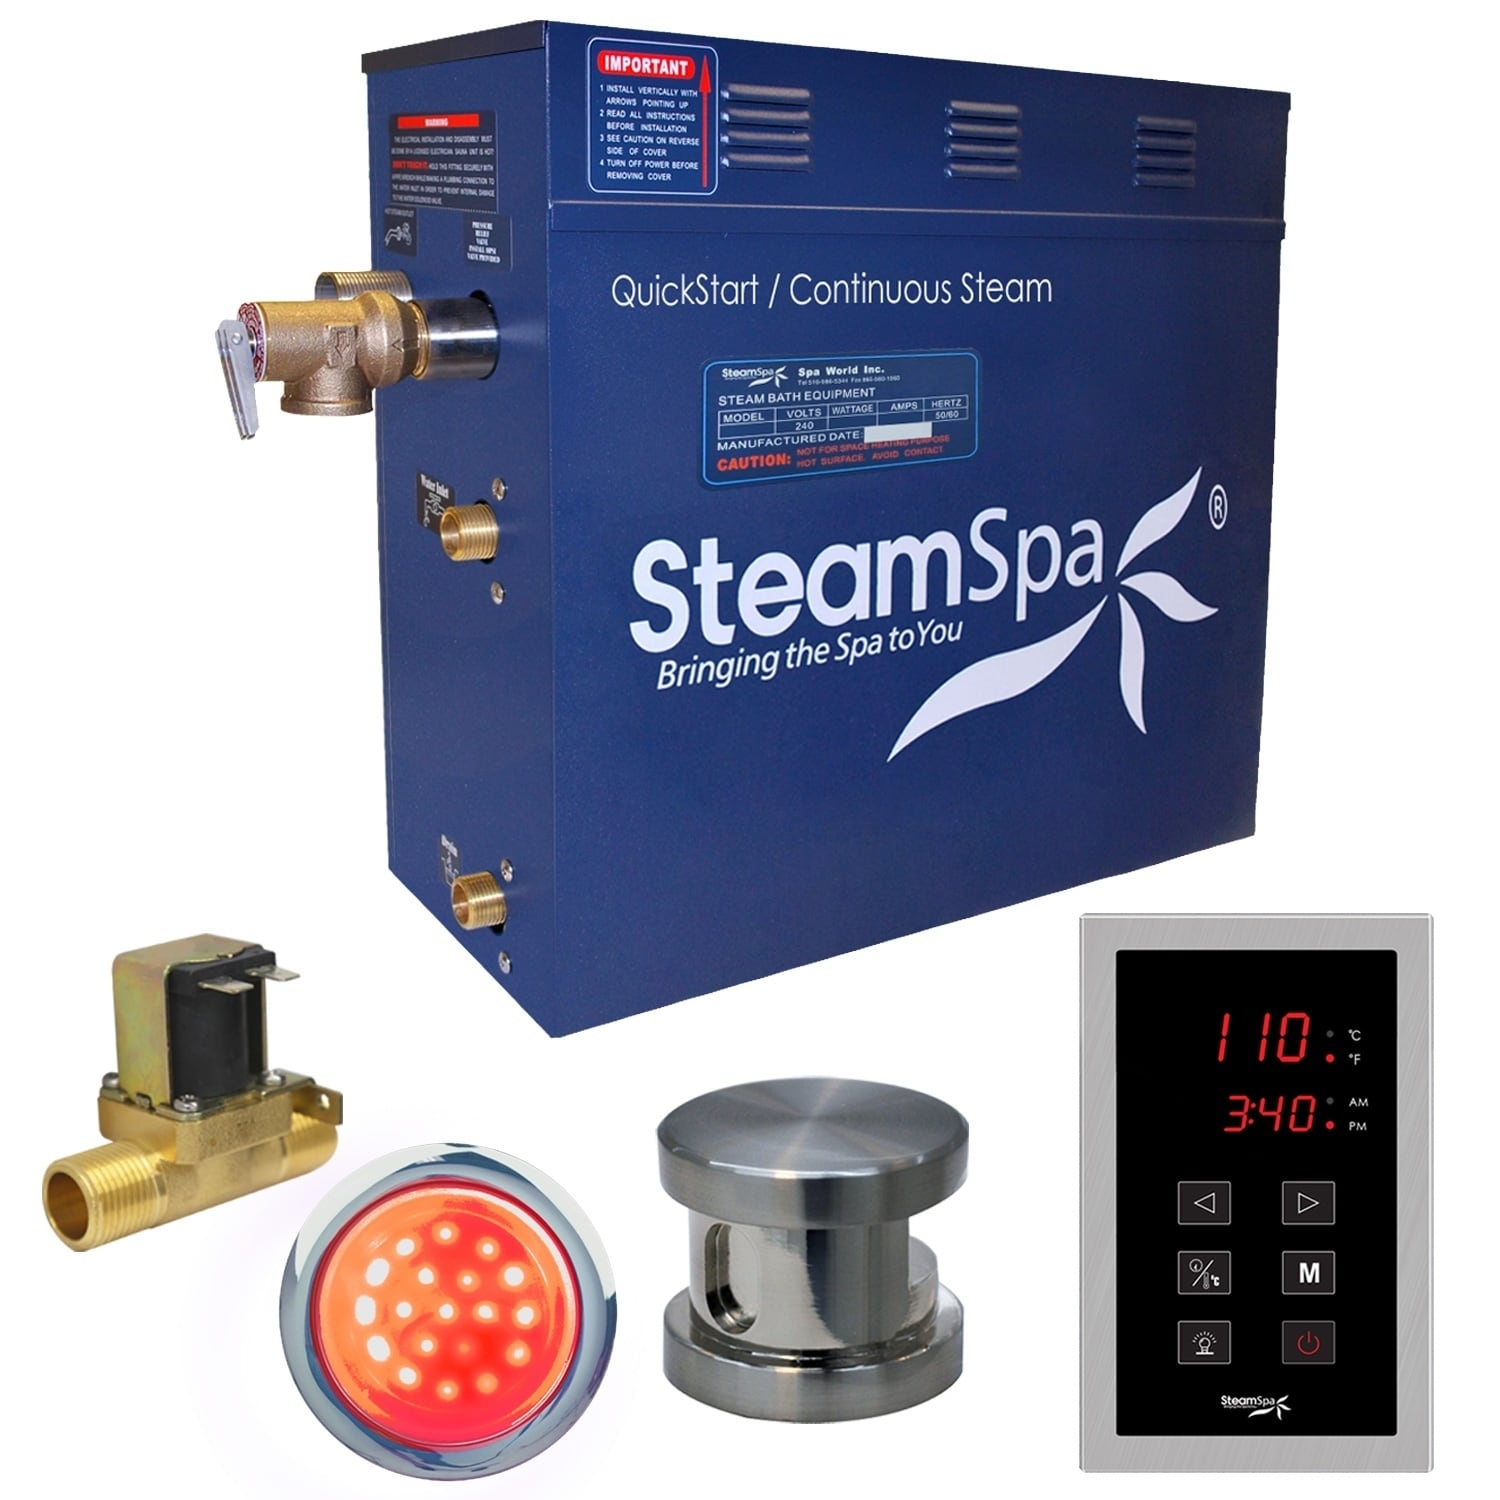 Steamspa Indulgence 7 5 Kw Quickstart Steam Bath Generator Package With Built In Auto Drain In Brushed Nickel On Sale Overstock 10536045